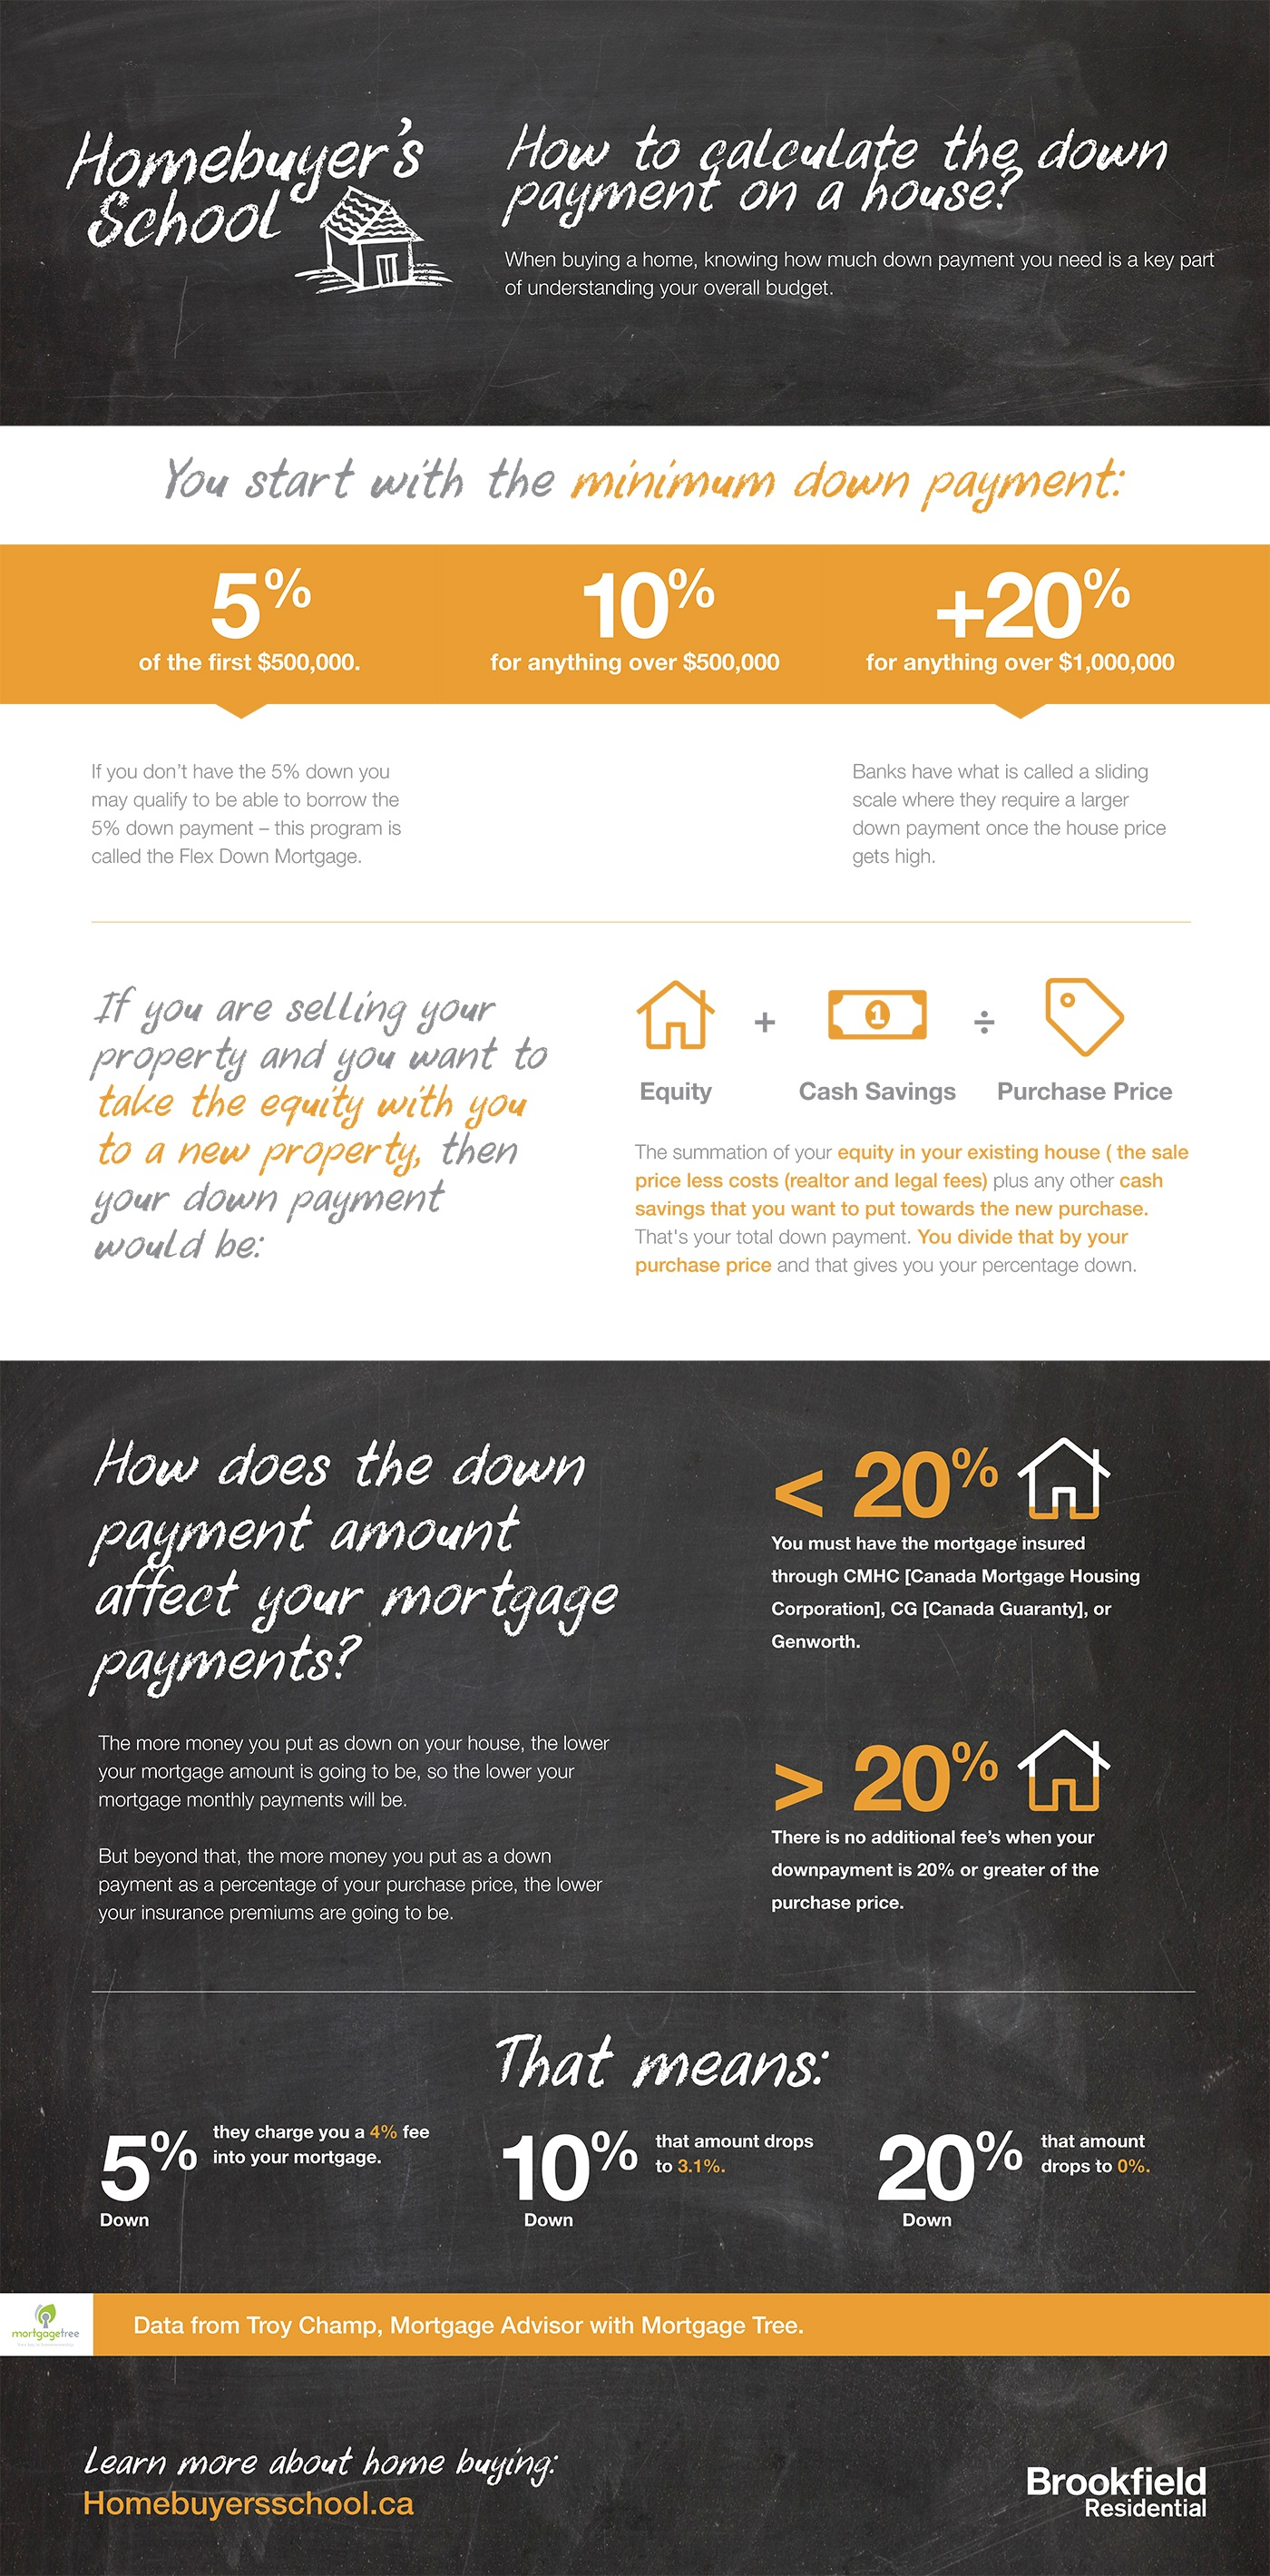 BRK-054 Down Payments Infographic March 22.jpg